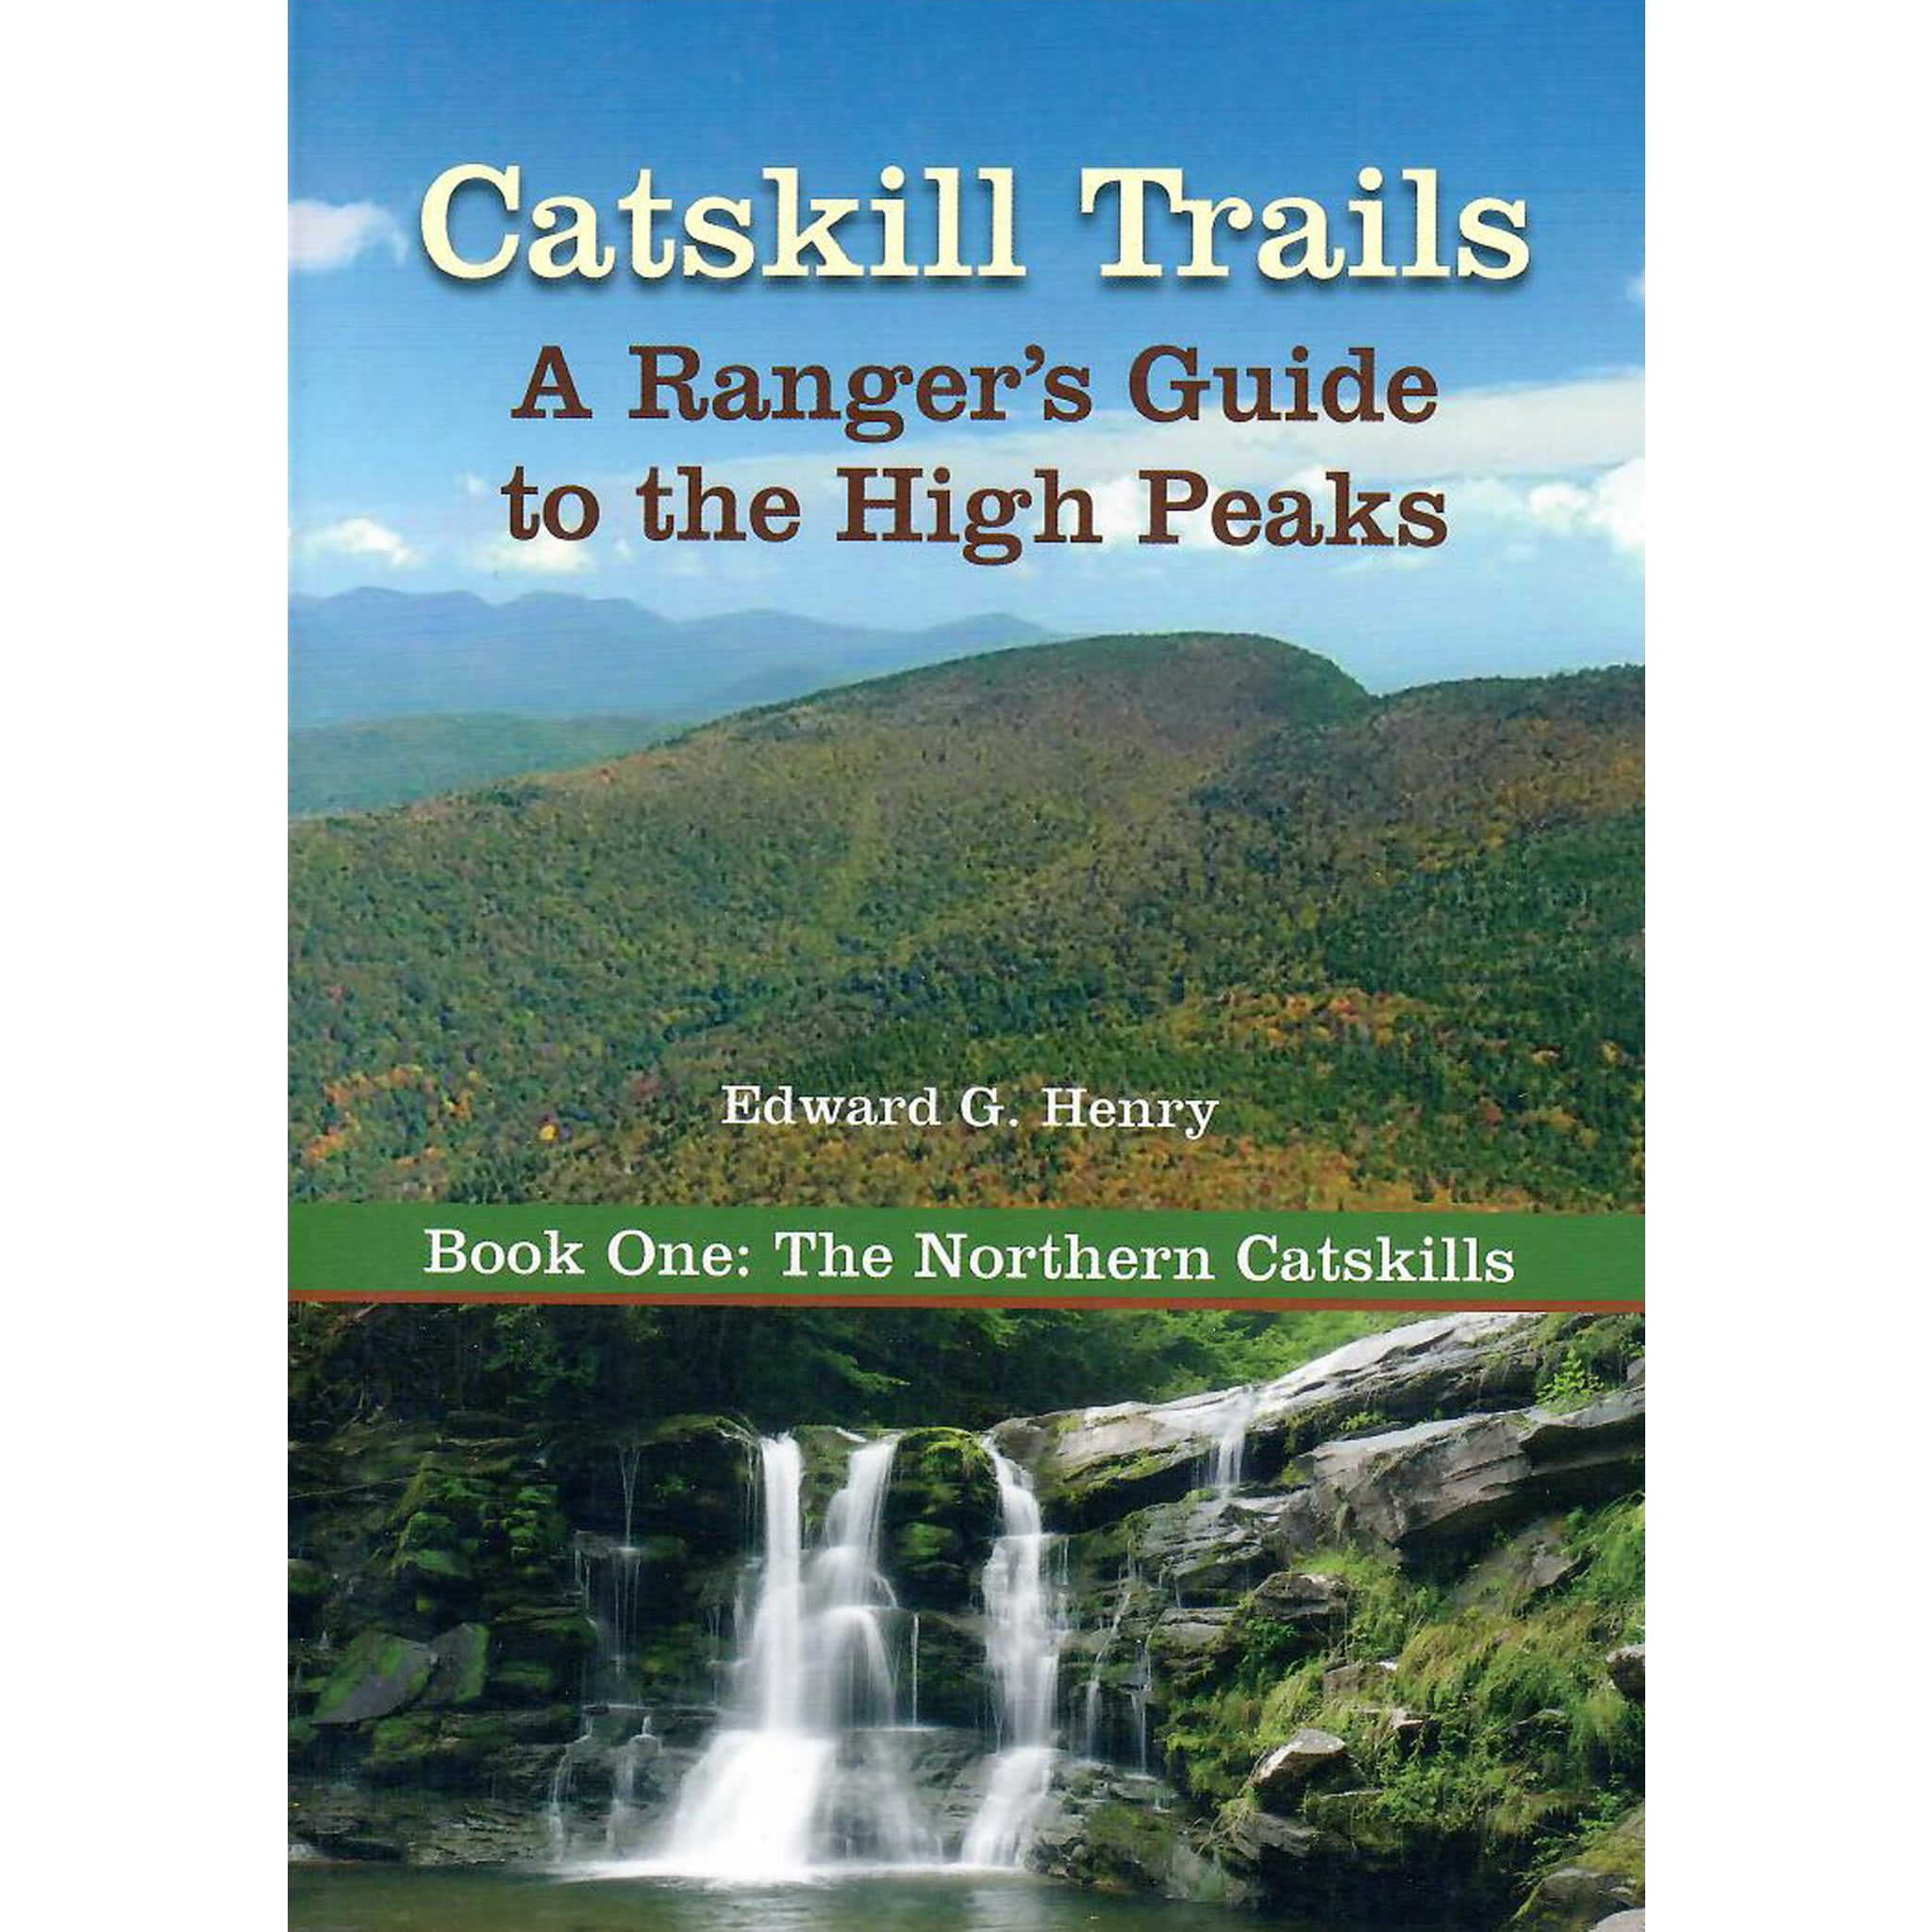 Catskill Trails: A Rangers Guide to the High Peaks